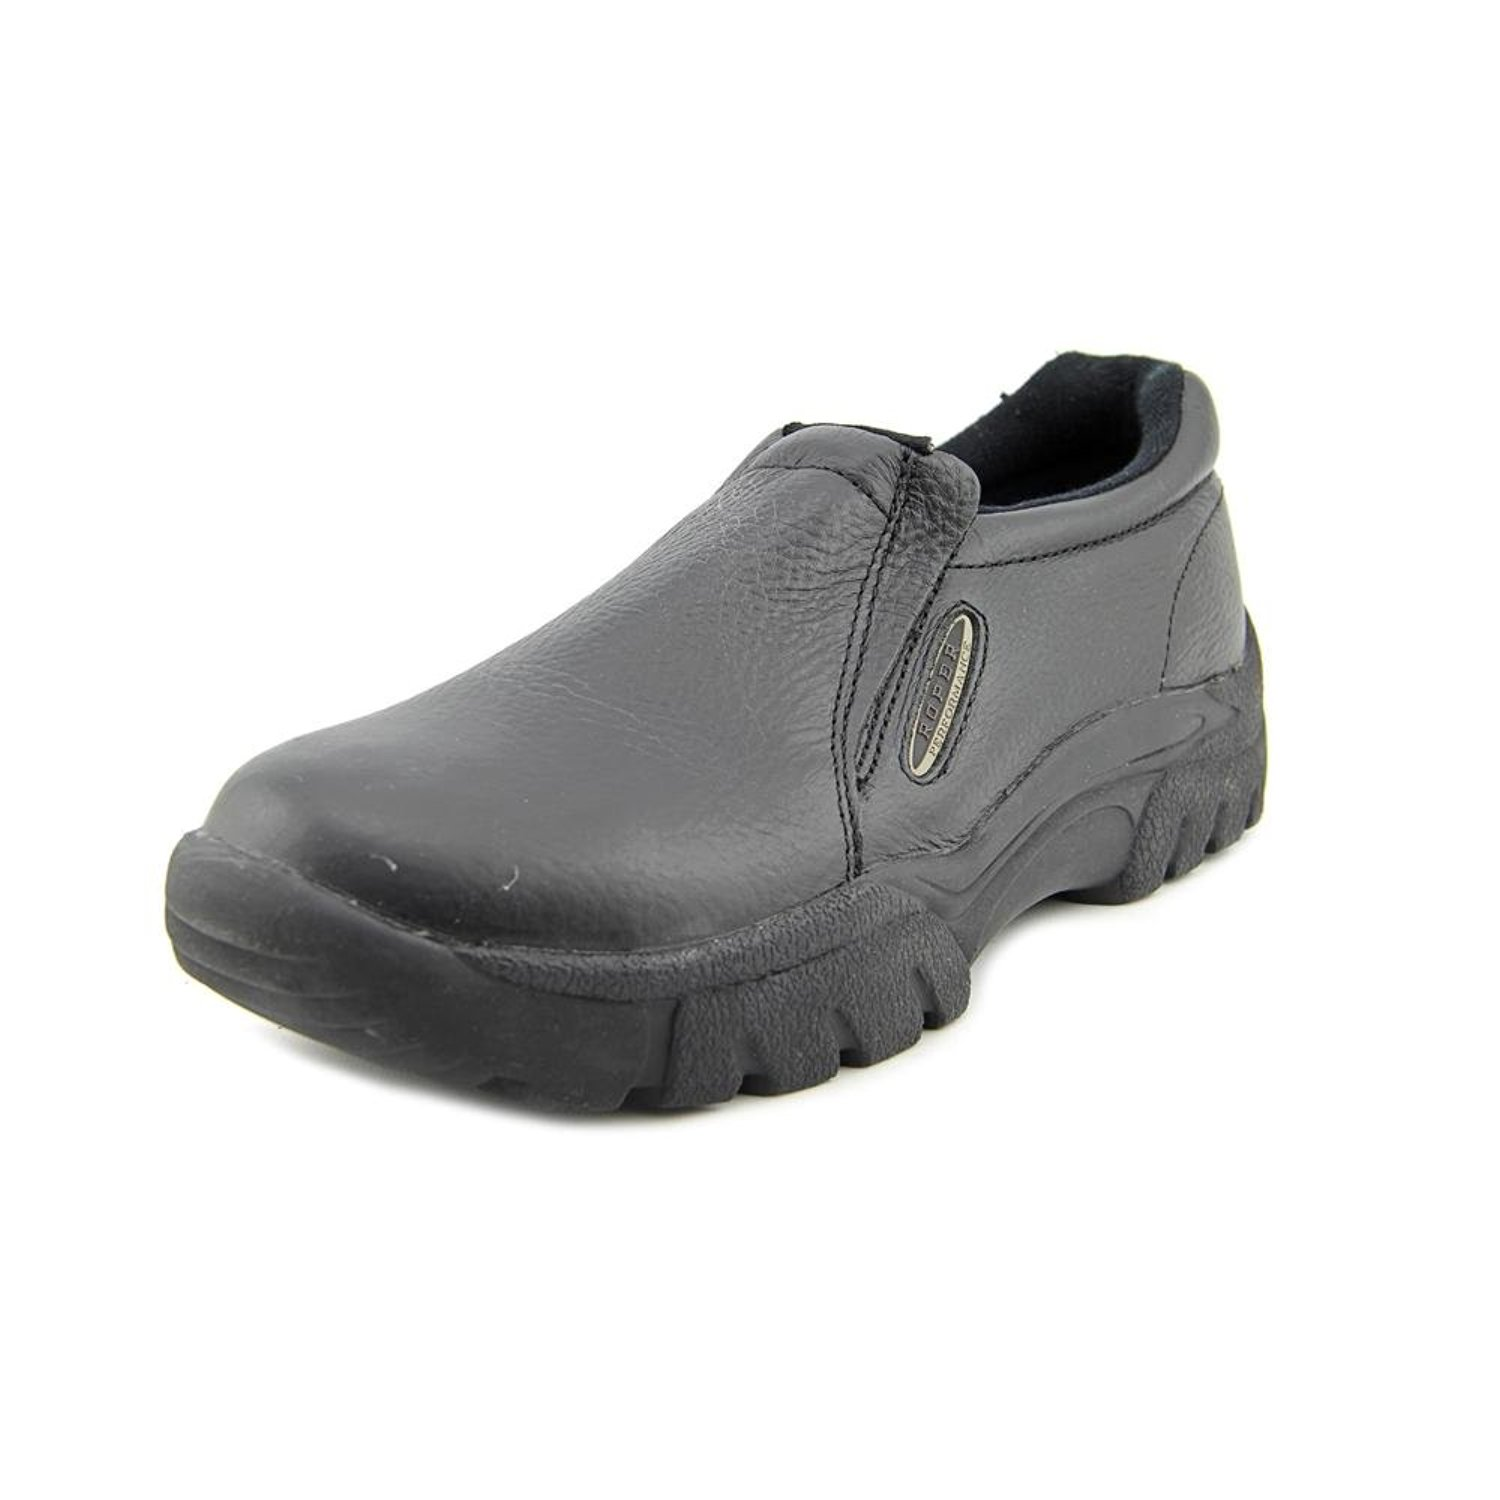 Roper Men's Performance Smooth Leather Slip-On Shoes Round Toe